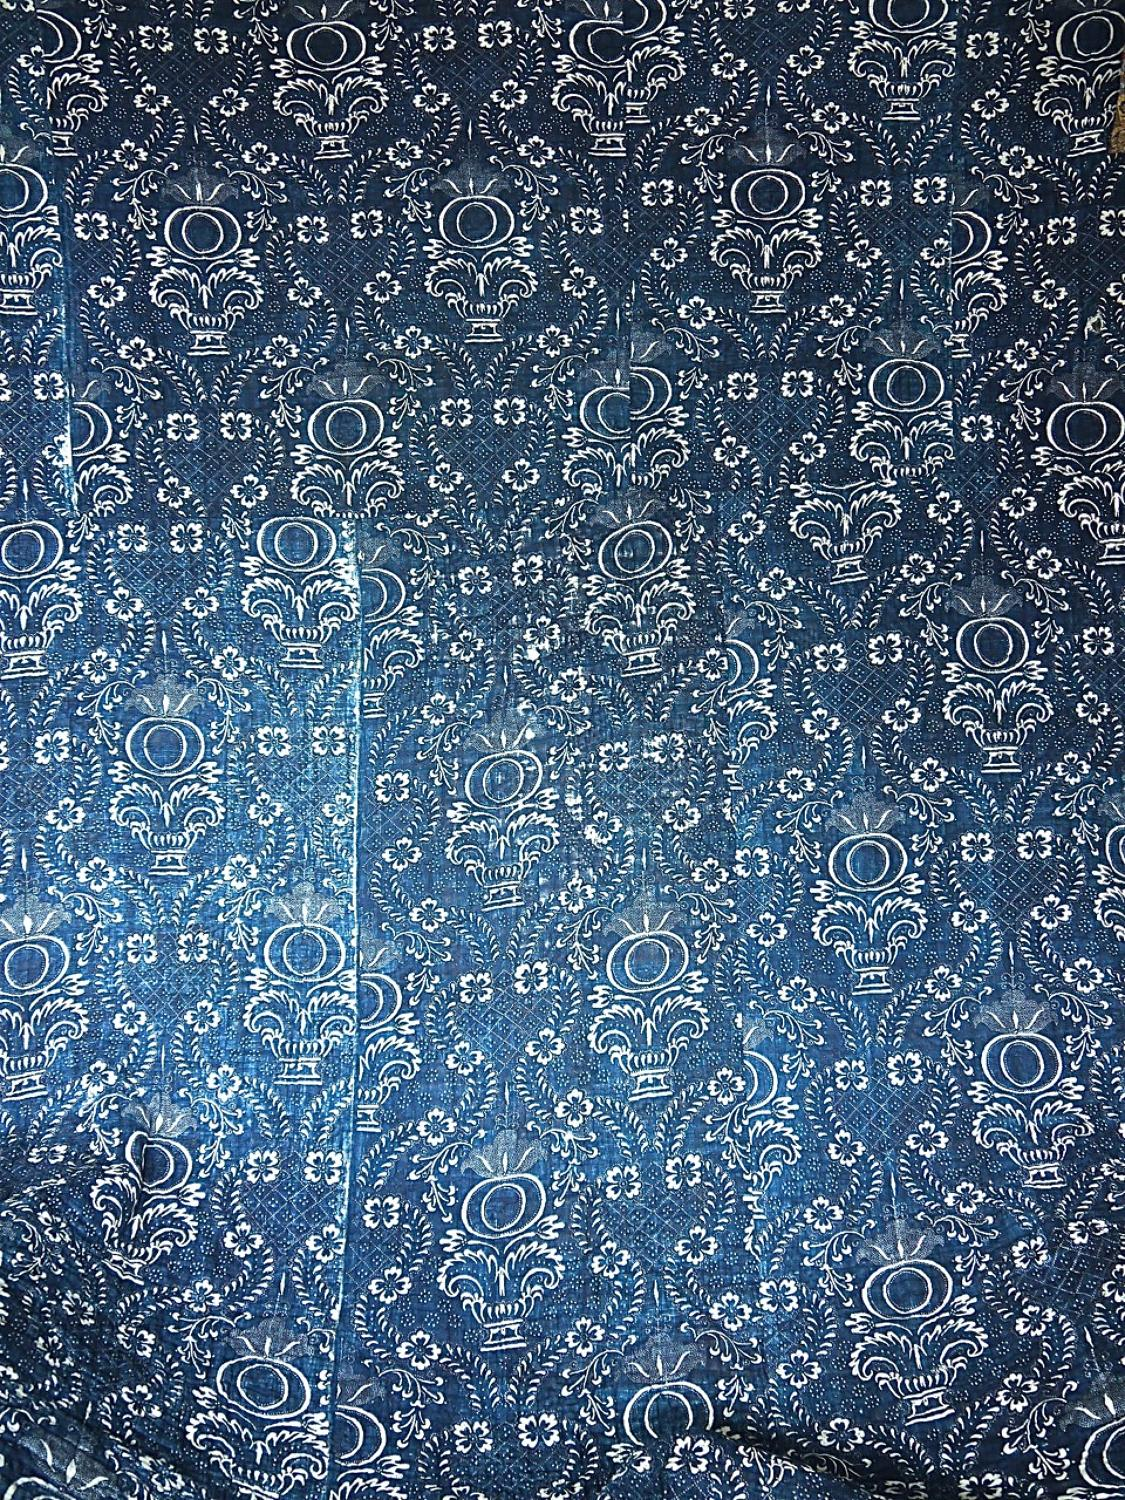 Late 18thc French Indigo Resist Cotton Quilt